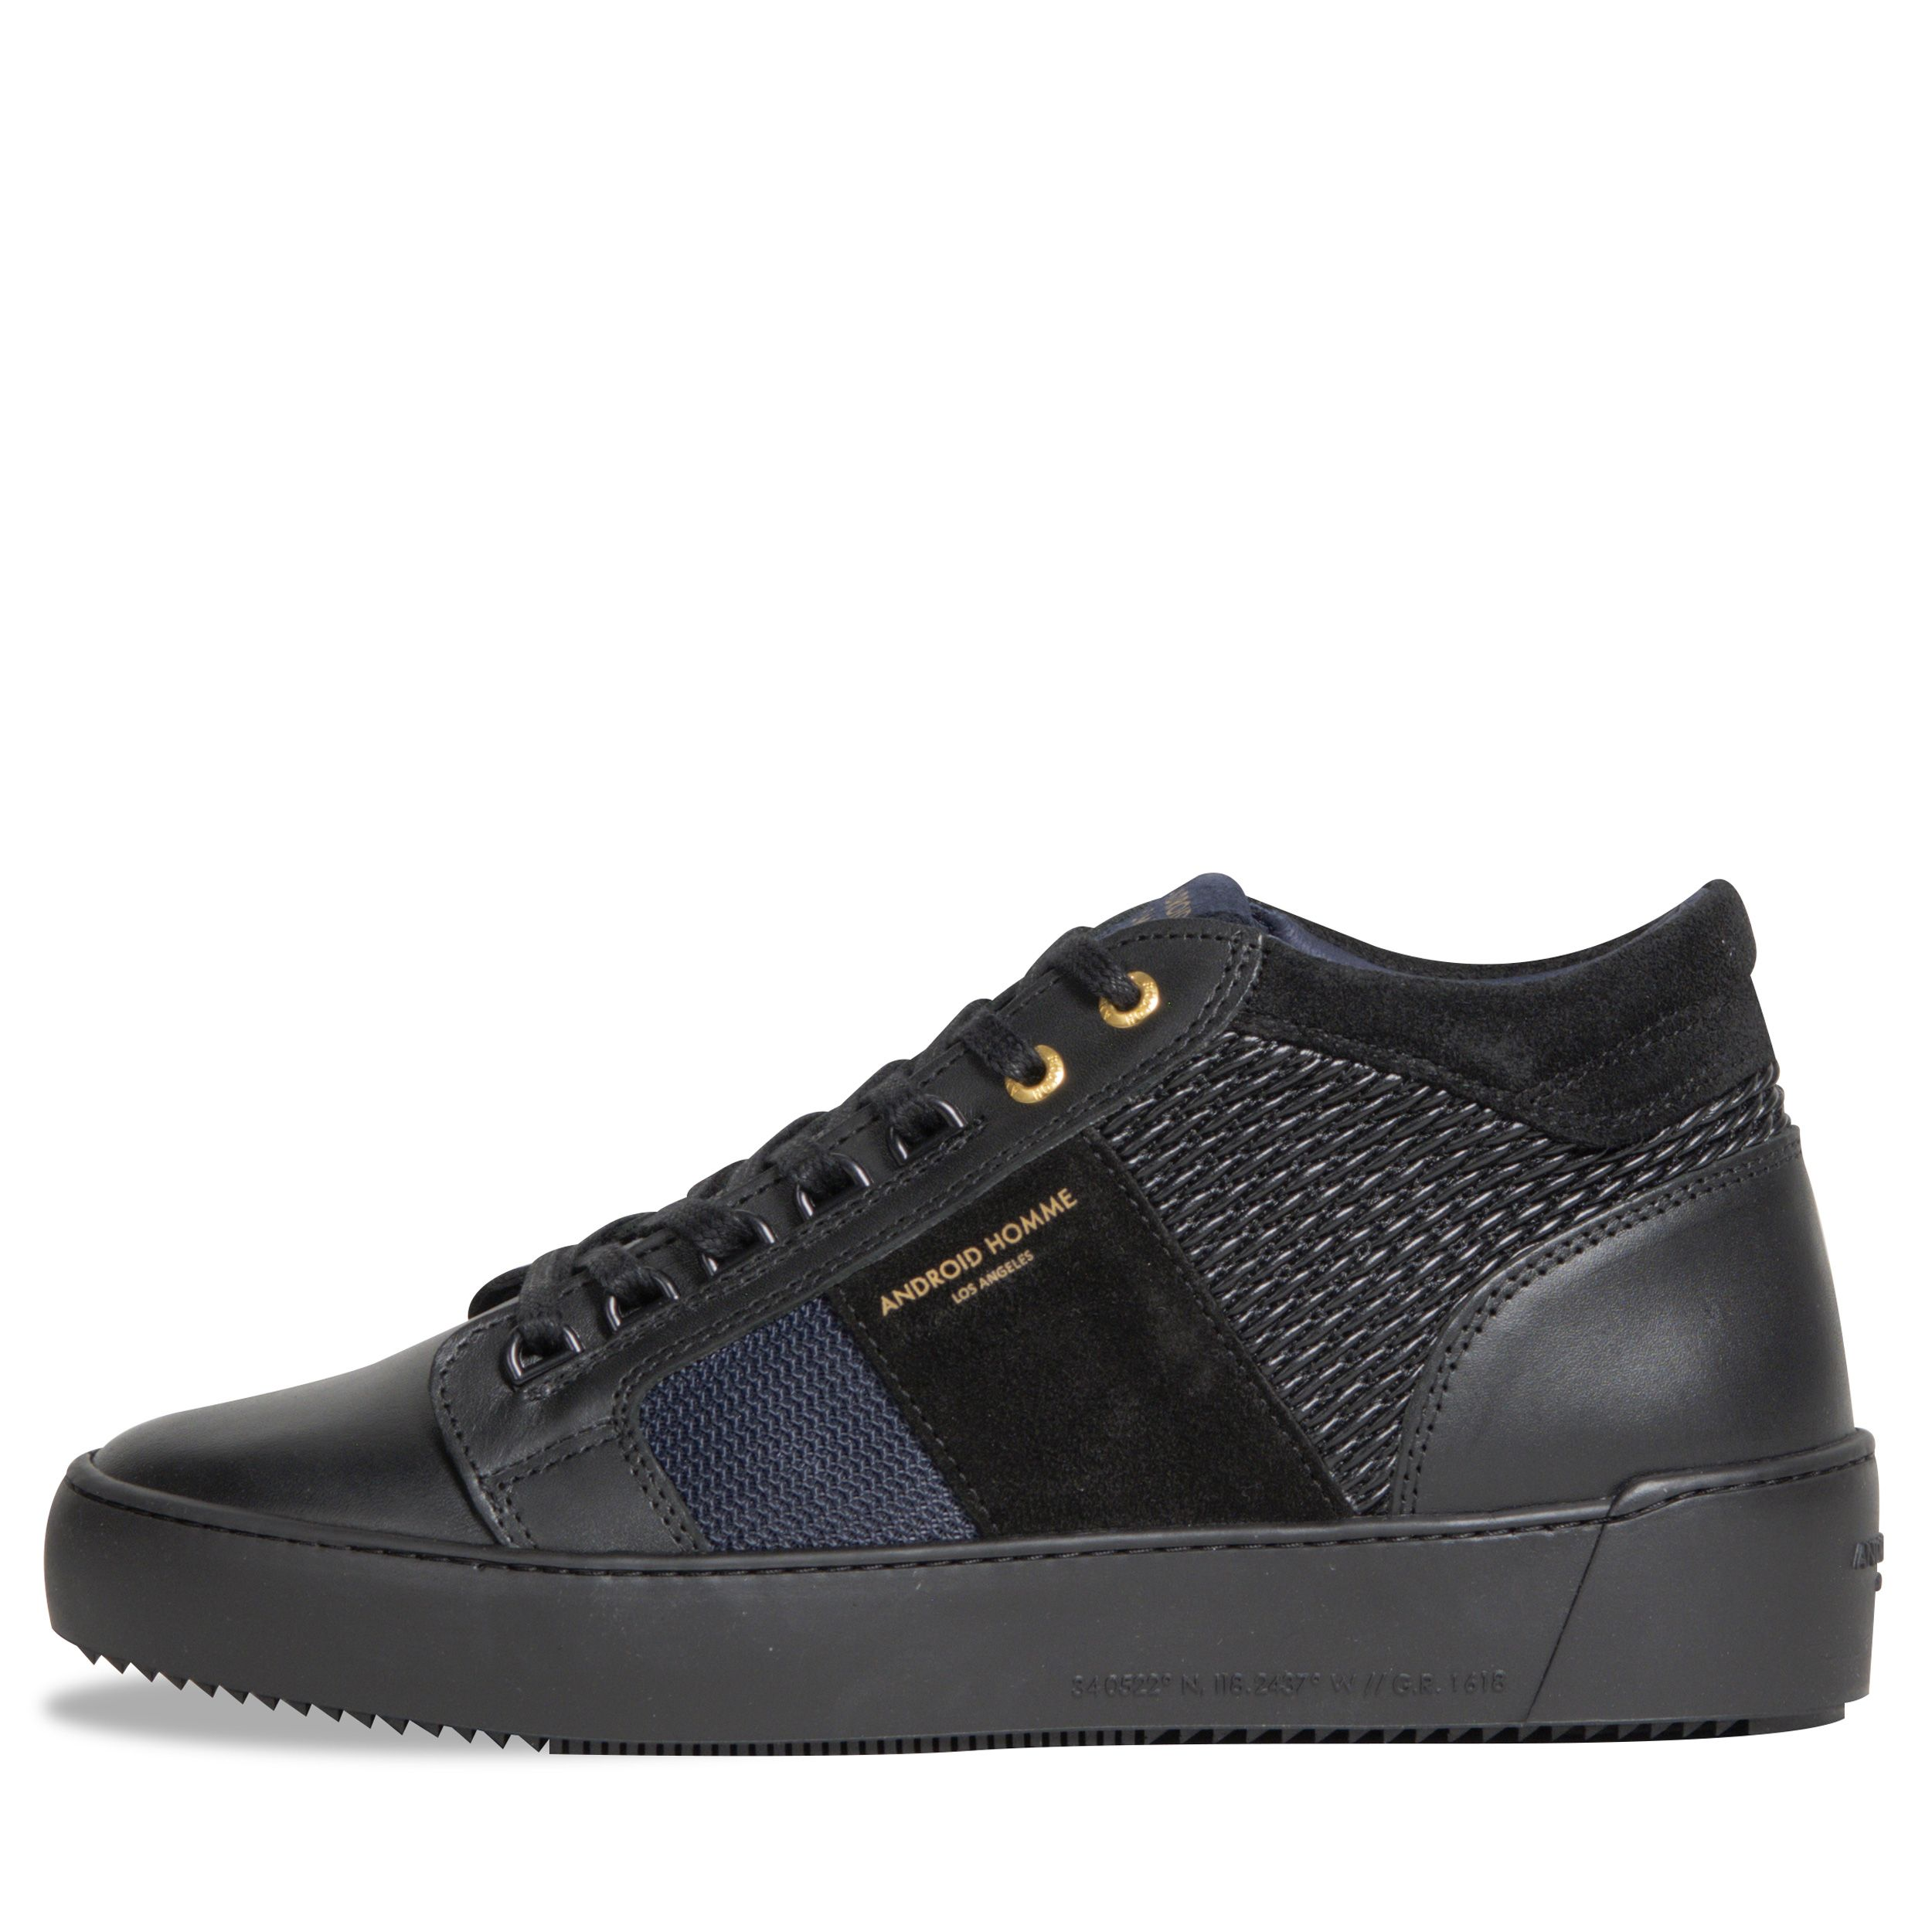 Android Homme Propulsion Sort Discount 6956e 37aee